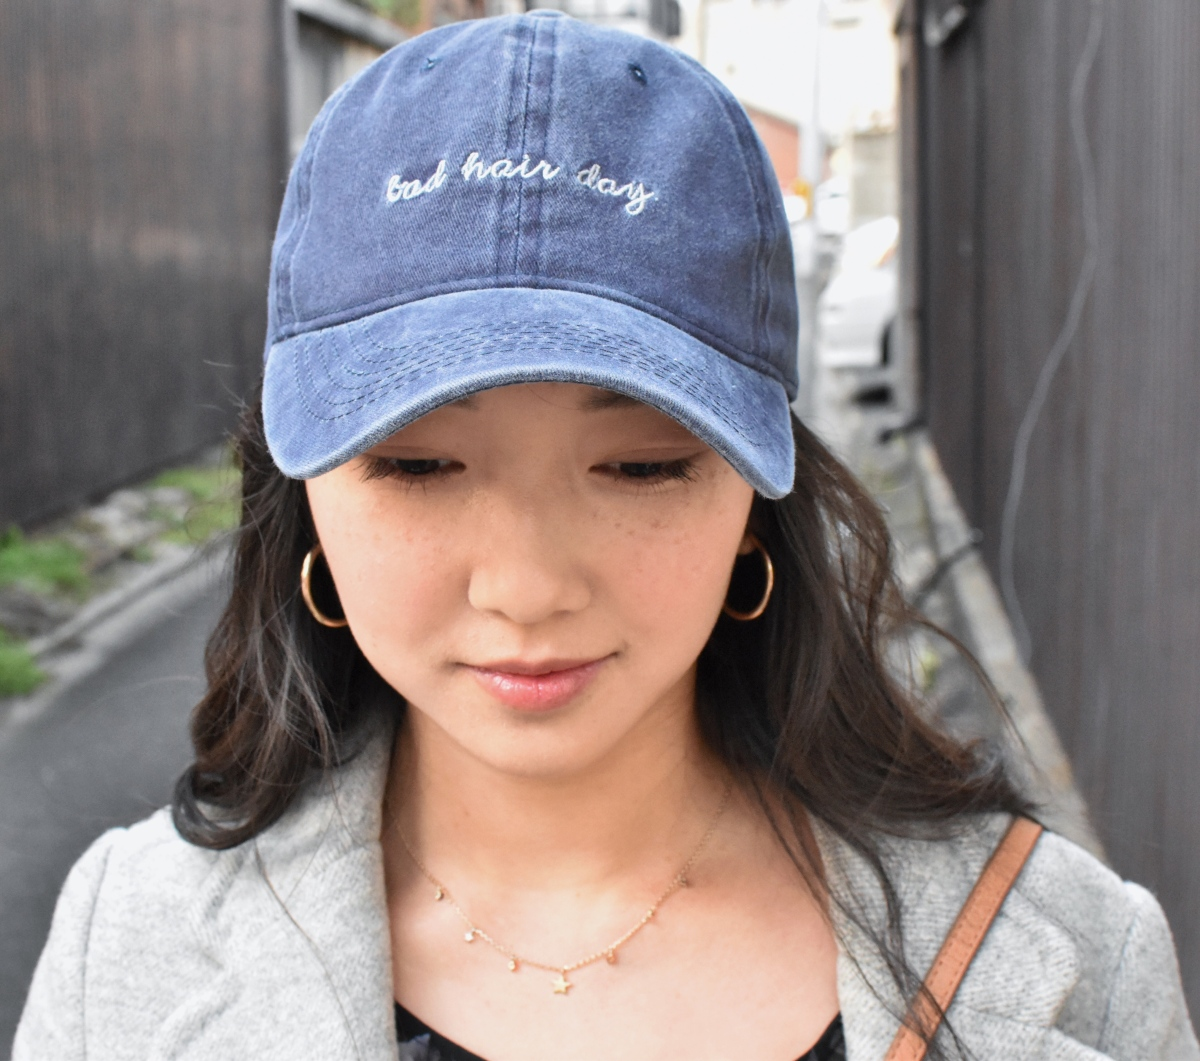 korean aesthetic, korean hats, bad hair day cap, ootd casual chic